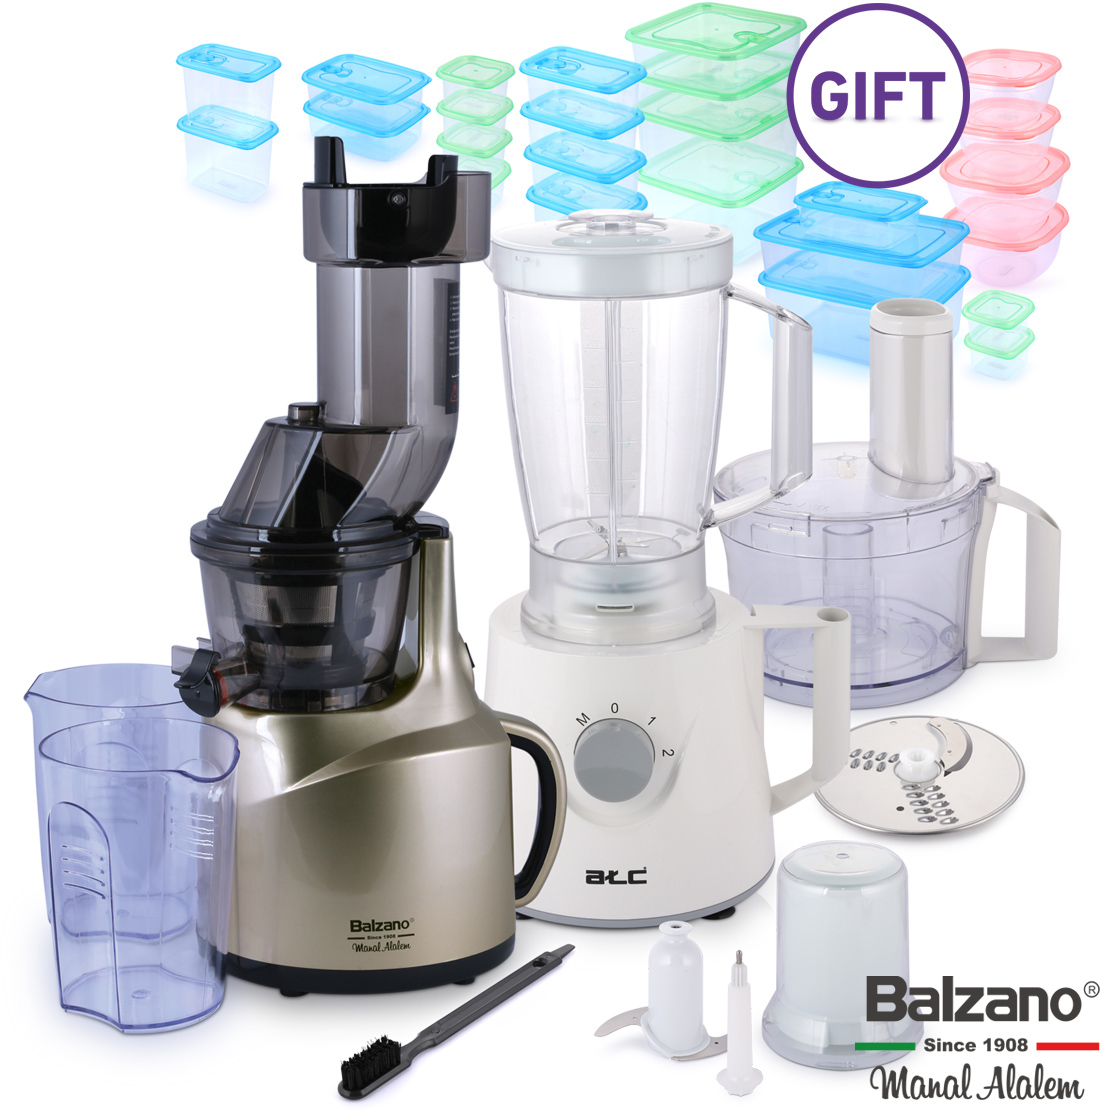 Whole Mouth Slow Juicer Gold & Gifts